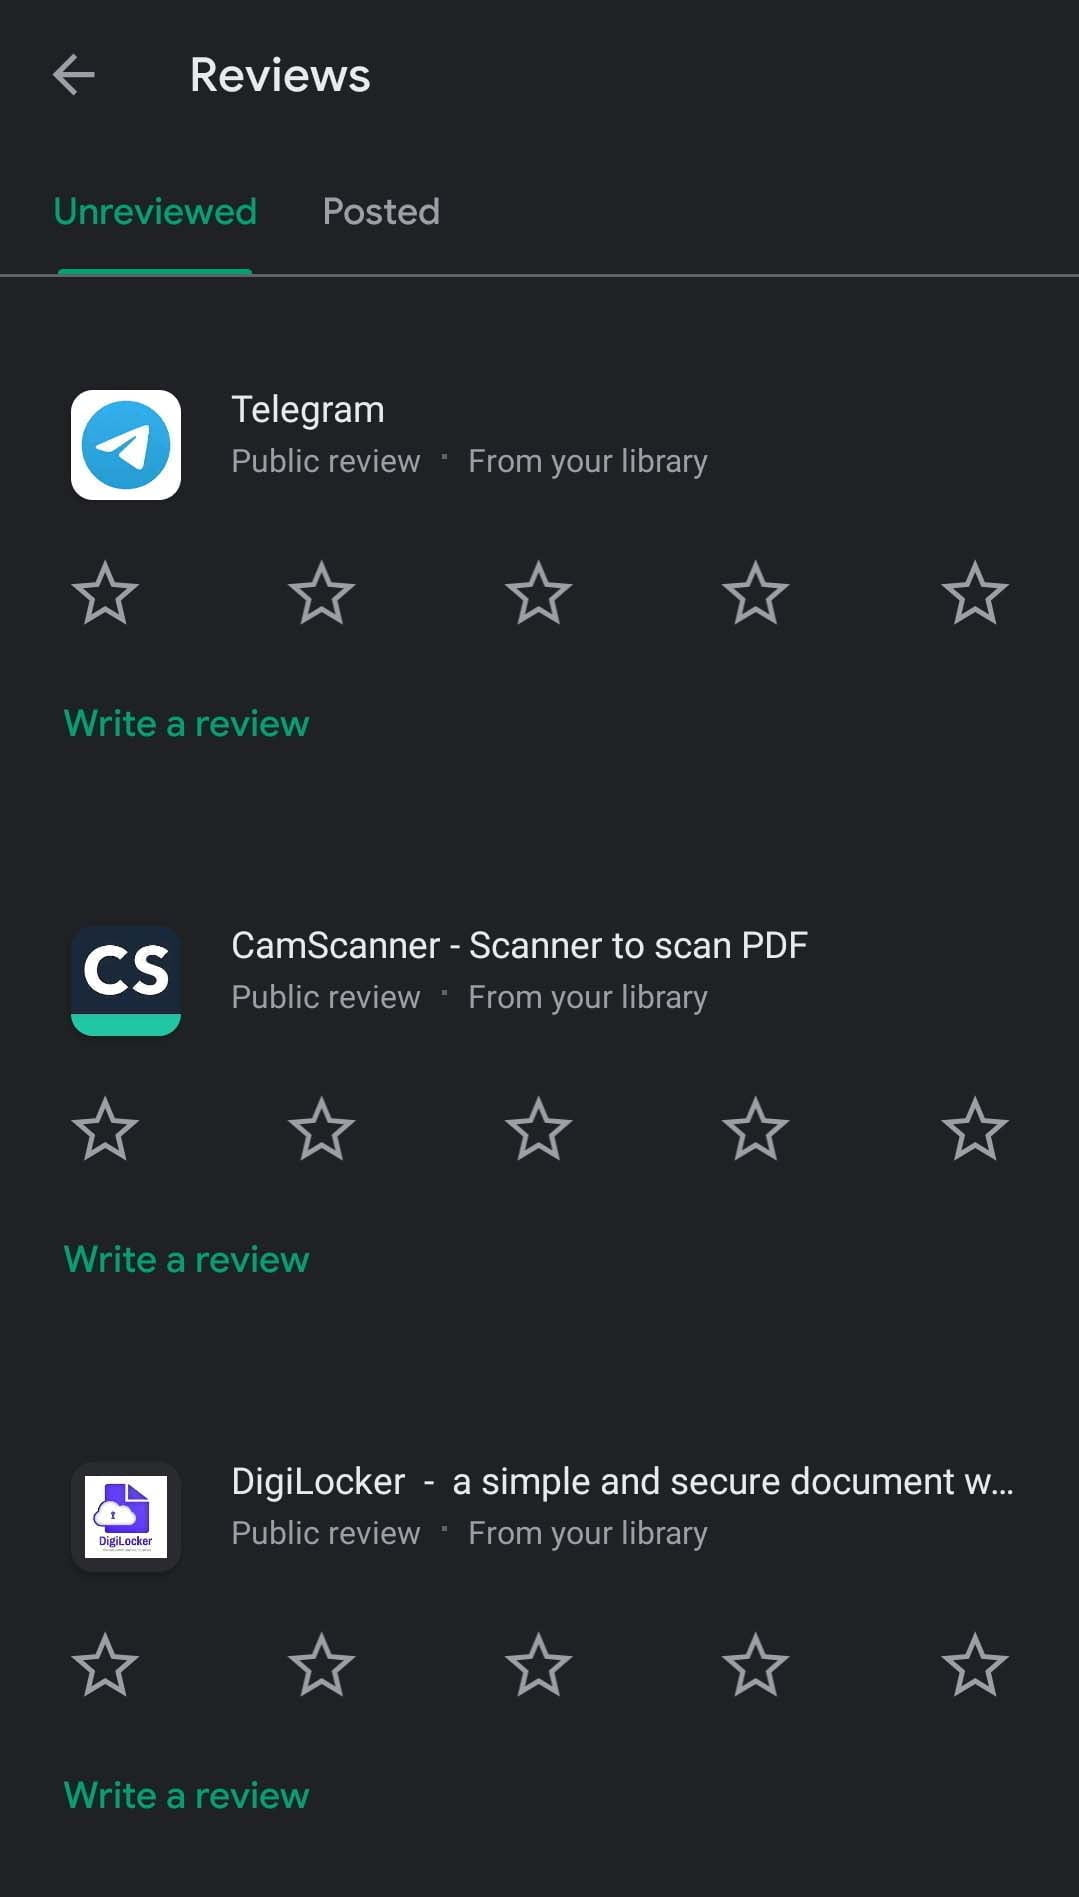 Google Play adds a new review section; allow users to manage all app reviews in one spot